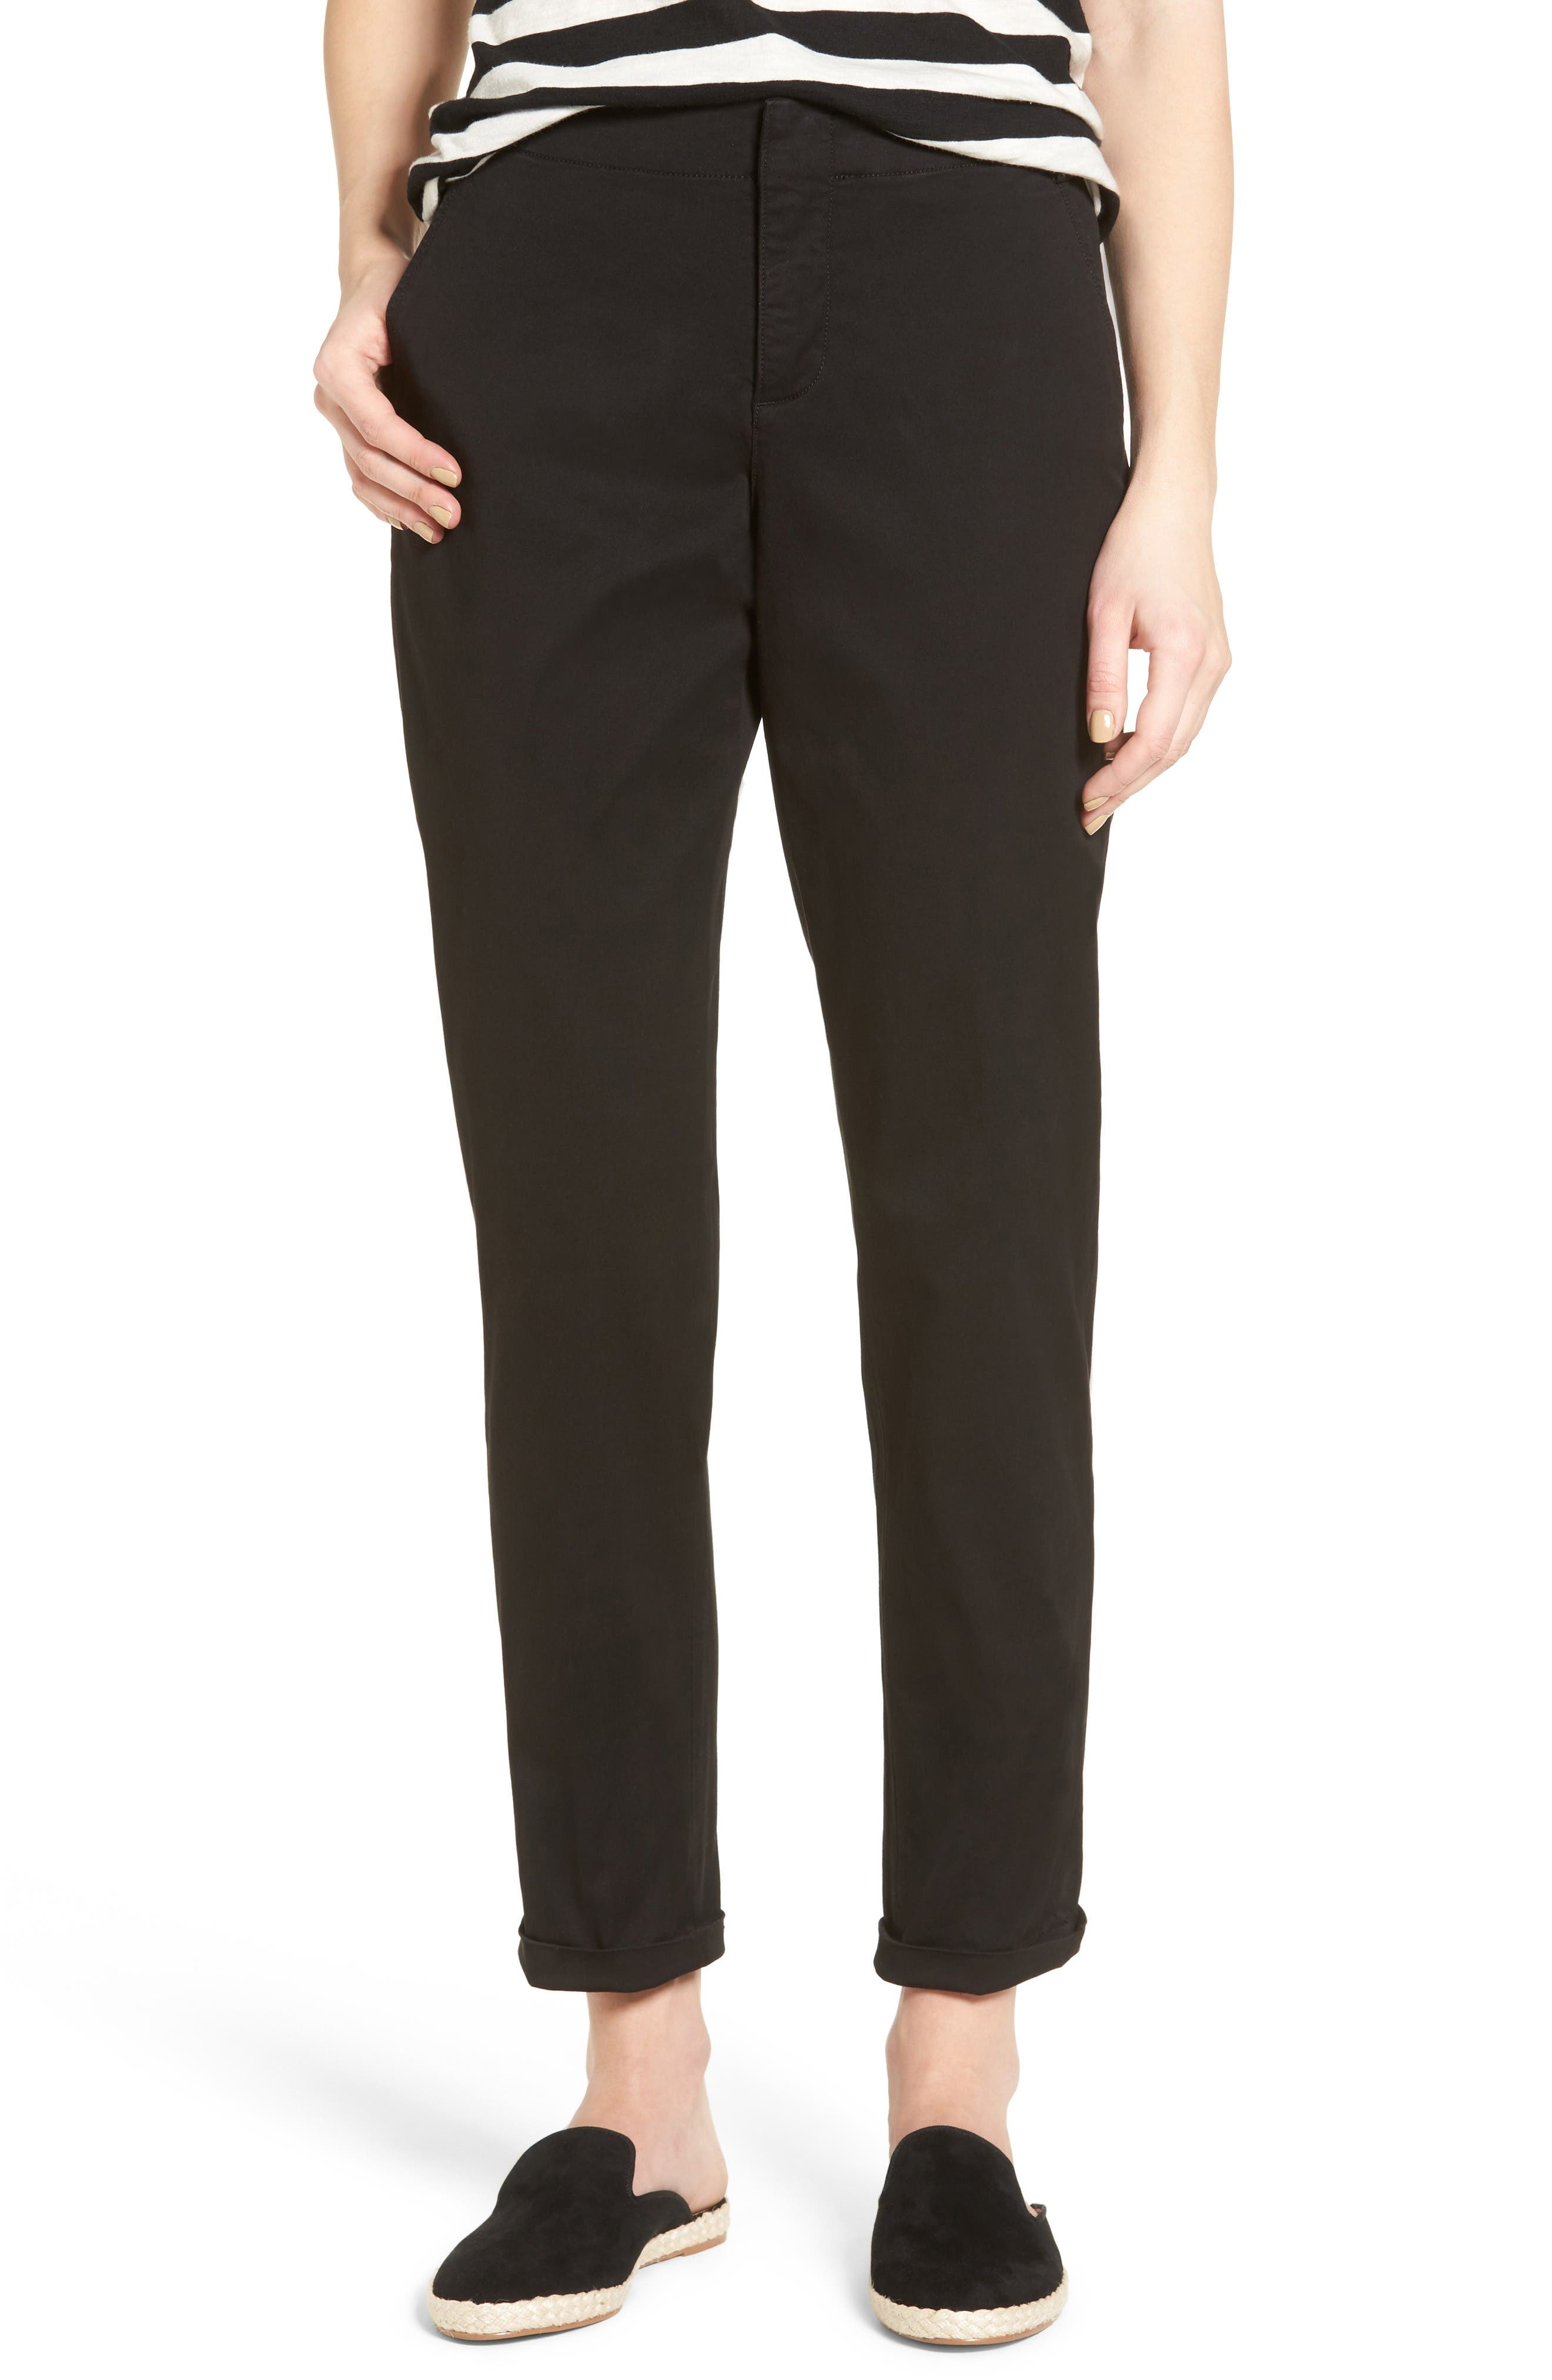 Alternate Image 1 Selected - NYDJ Riley Stretch Twill Relaxed Trousers (Regular & Petite)